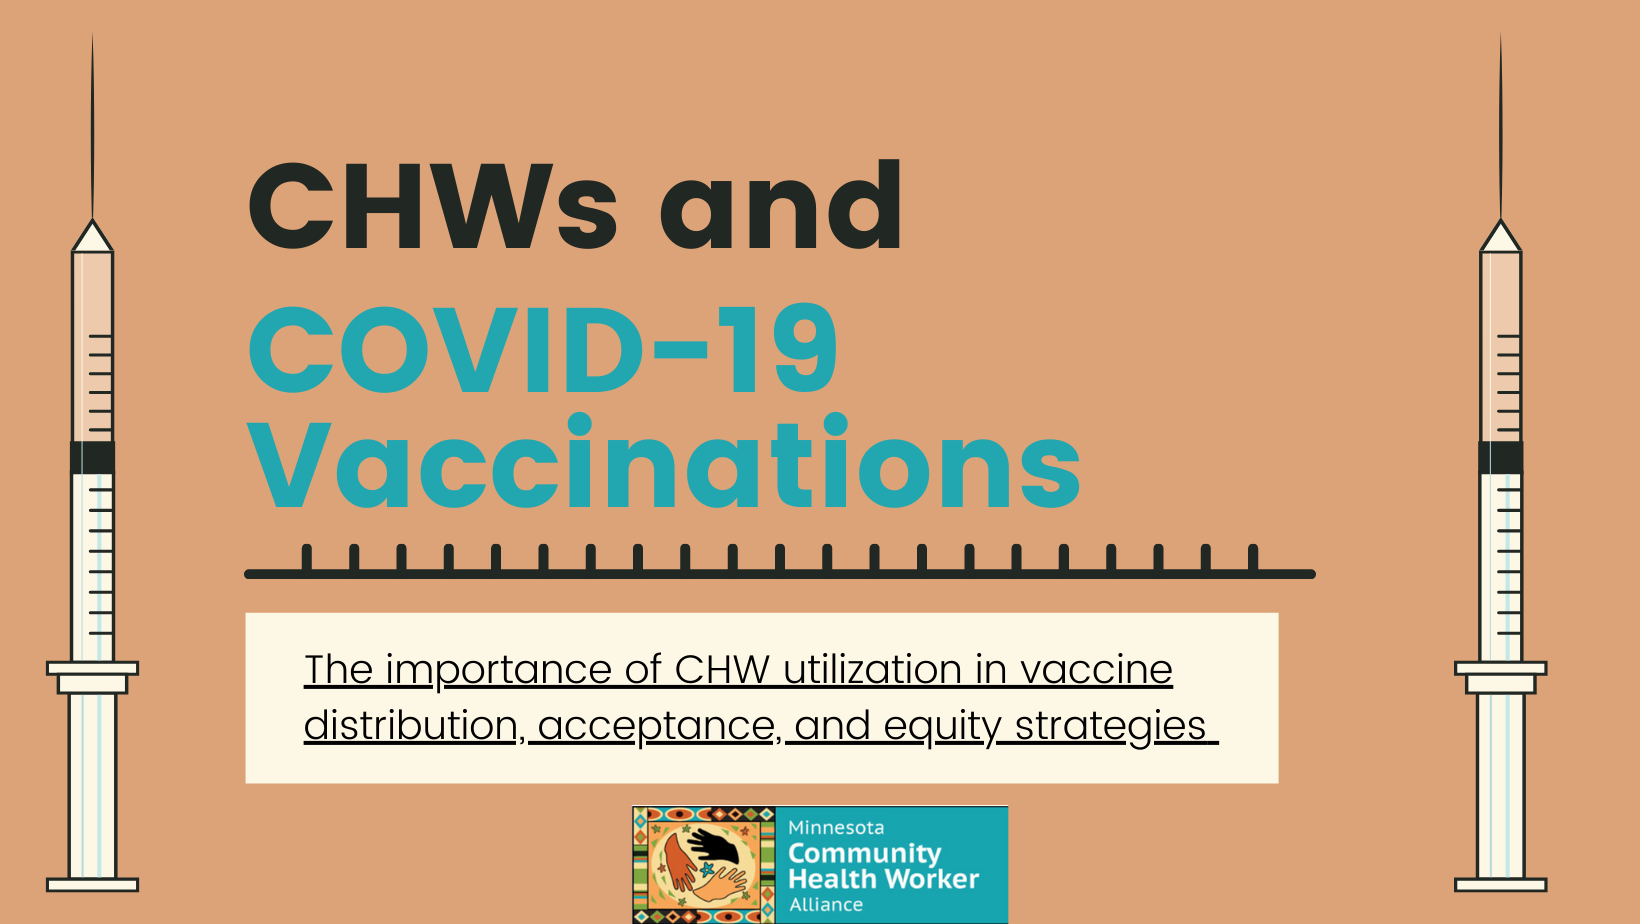 CHWs and COVID-19 Vaccination